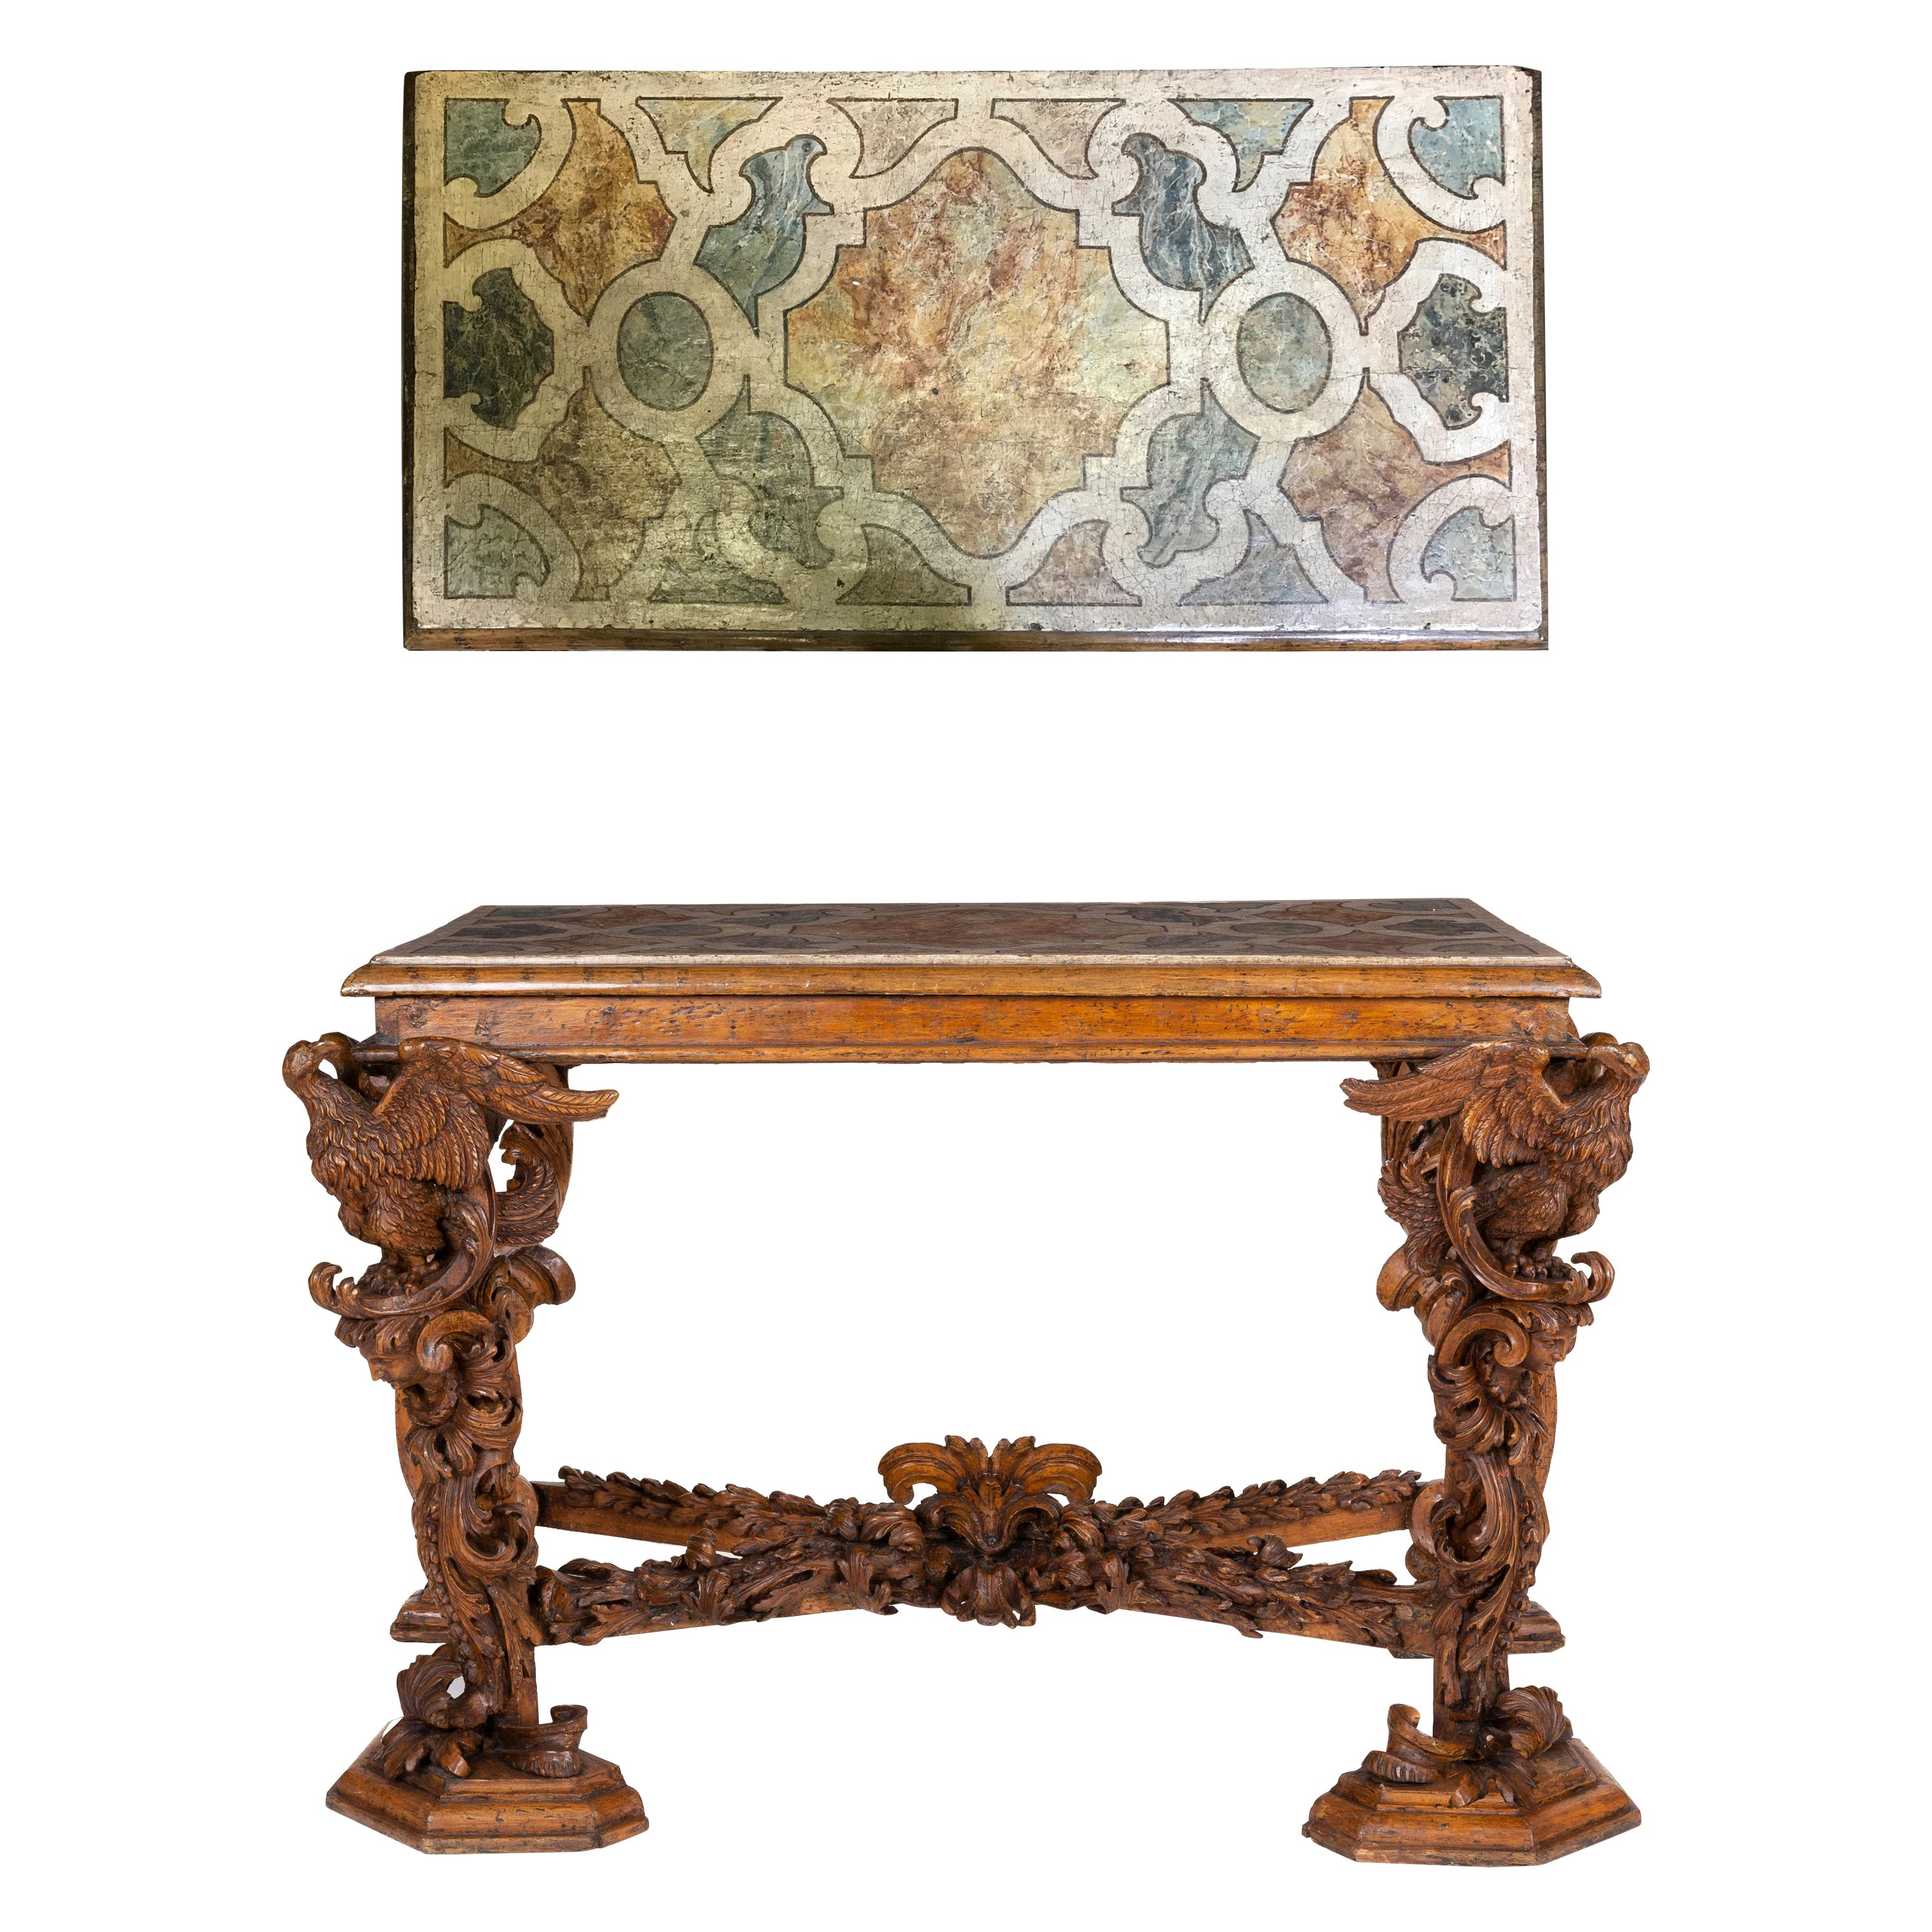 Italian Baroque Carved Walnut Side Console Table, 18th Century